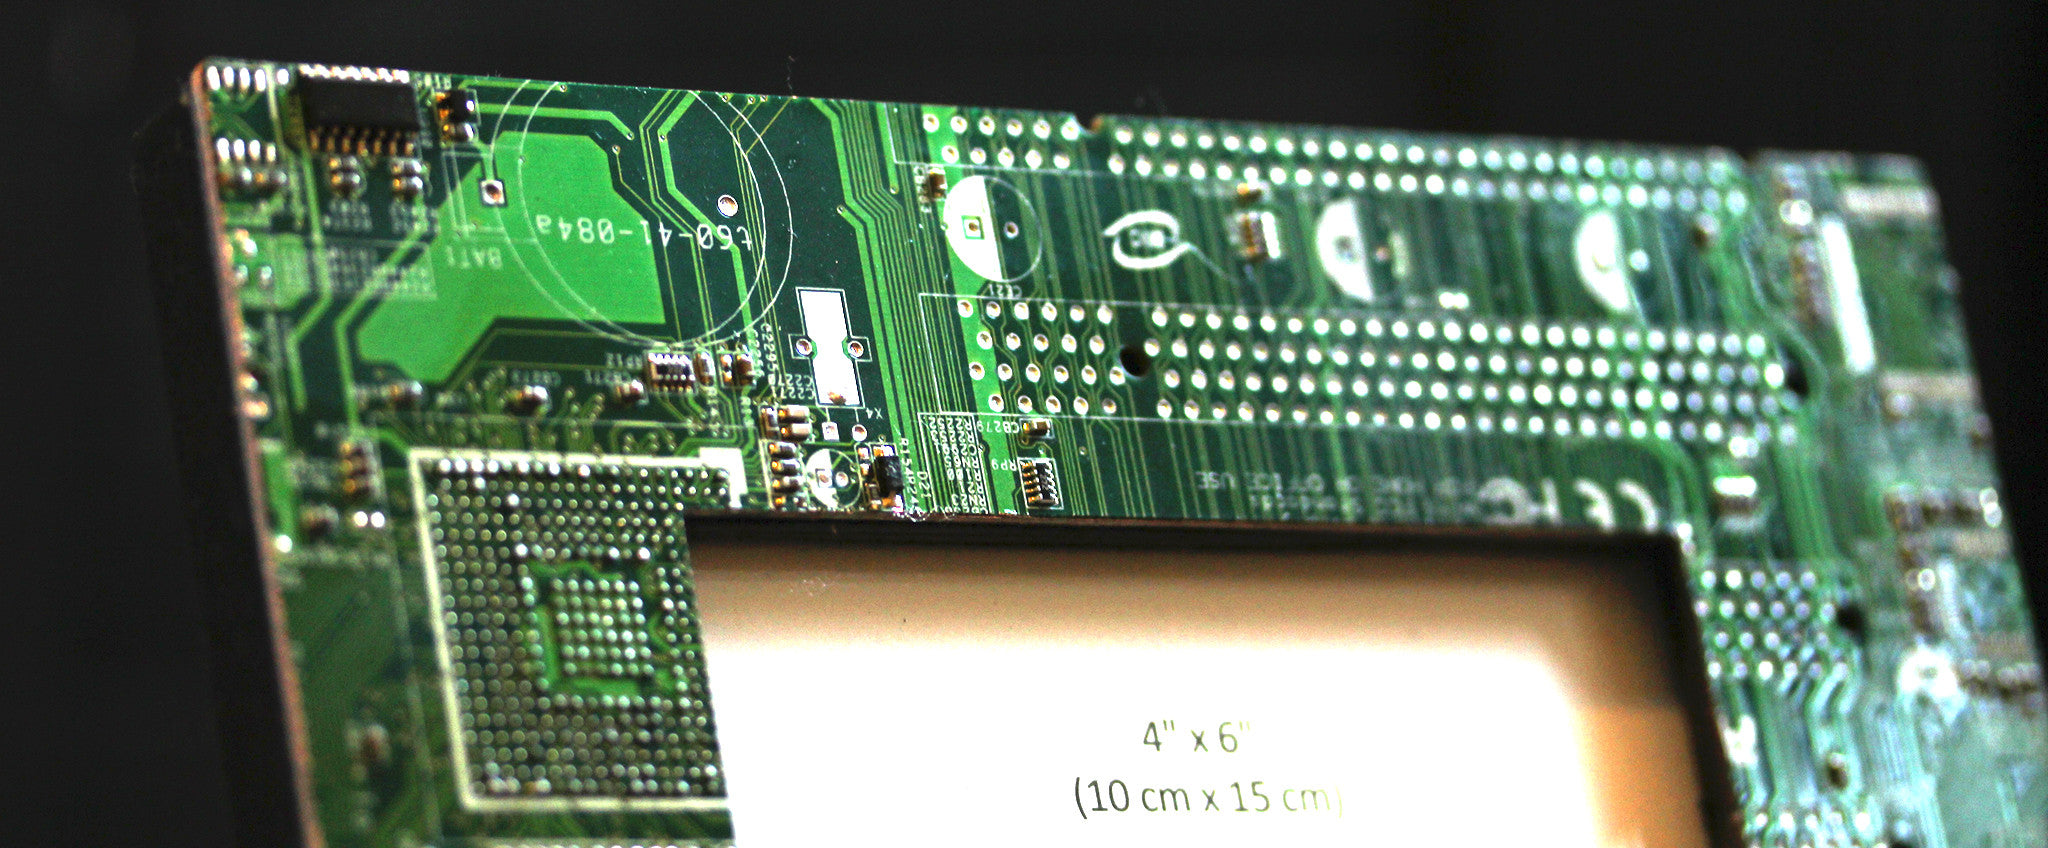 Circuit board picture frame